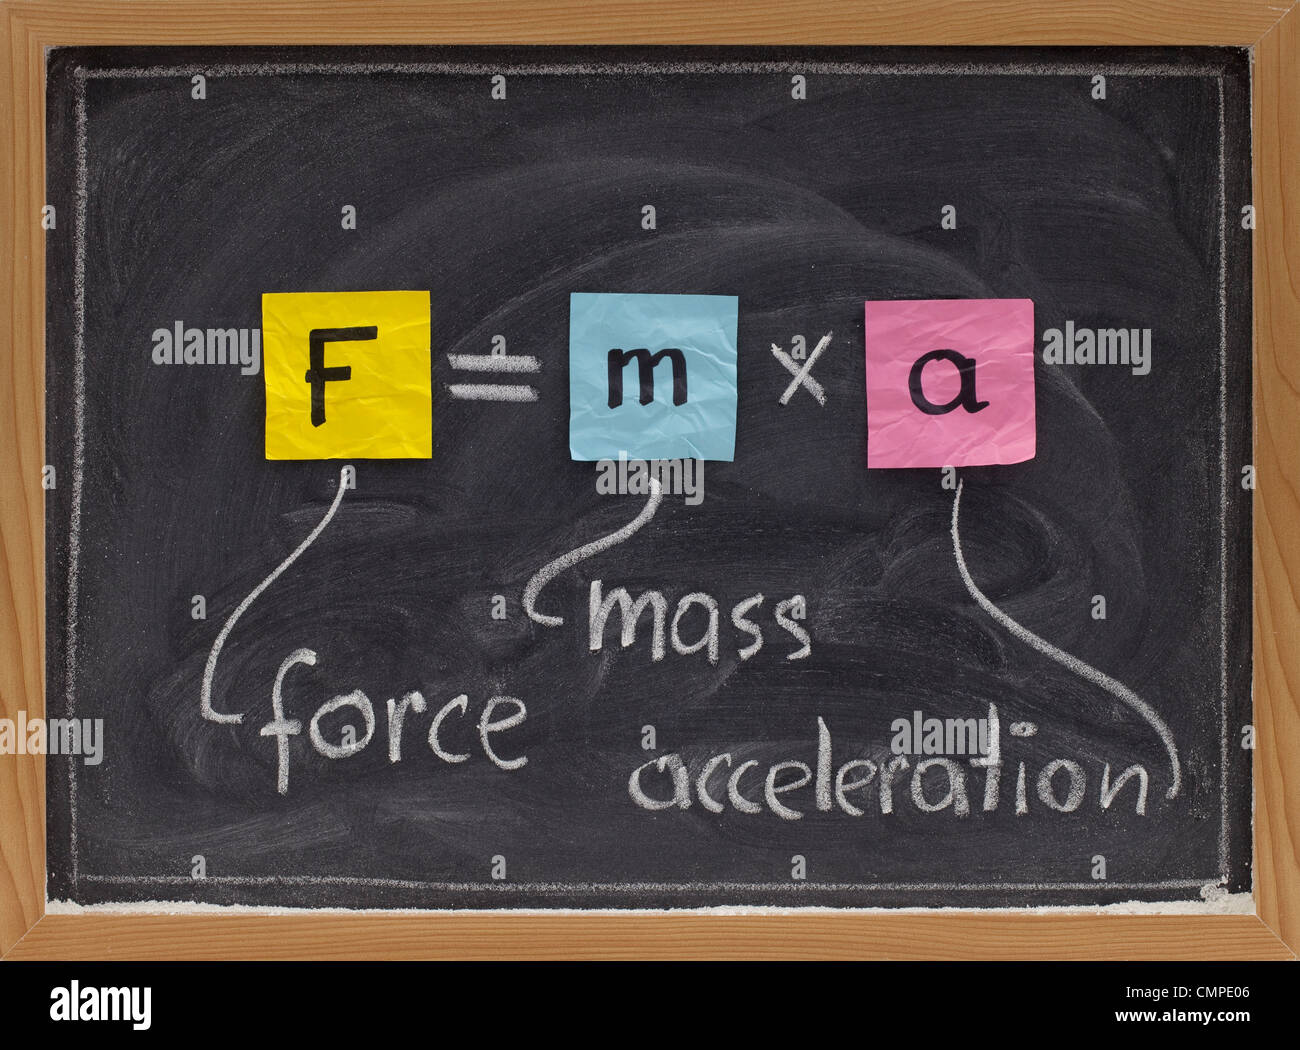 force applied to a body produces a proportional acceleration - Newton second law - Stock Image